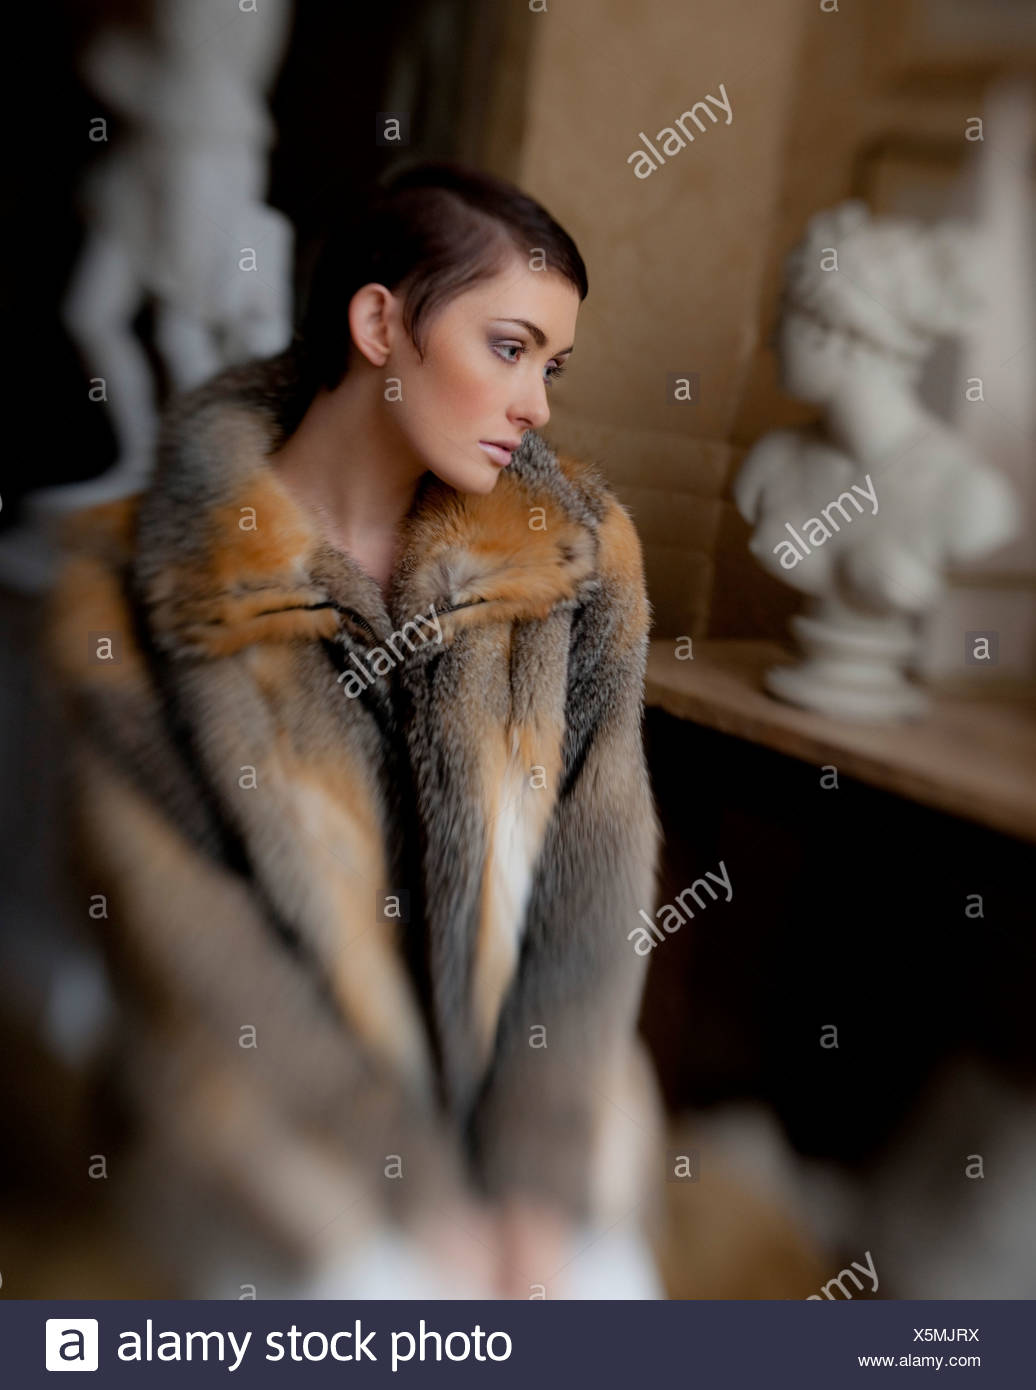 Woman Wearing A Fur Coat High Resolution Stock Photography and ...